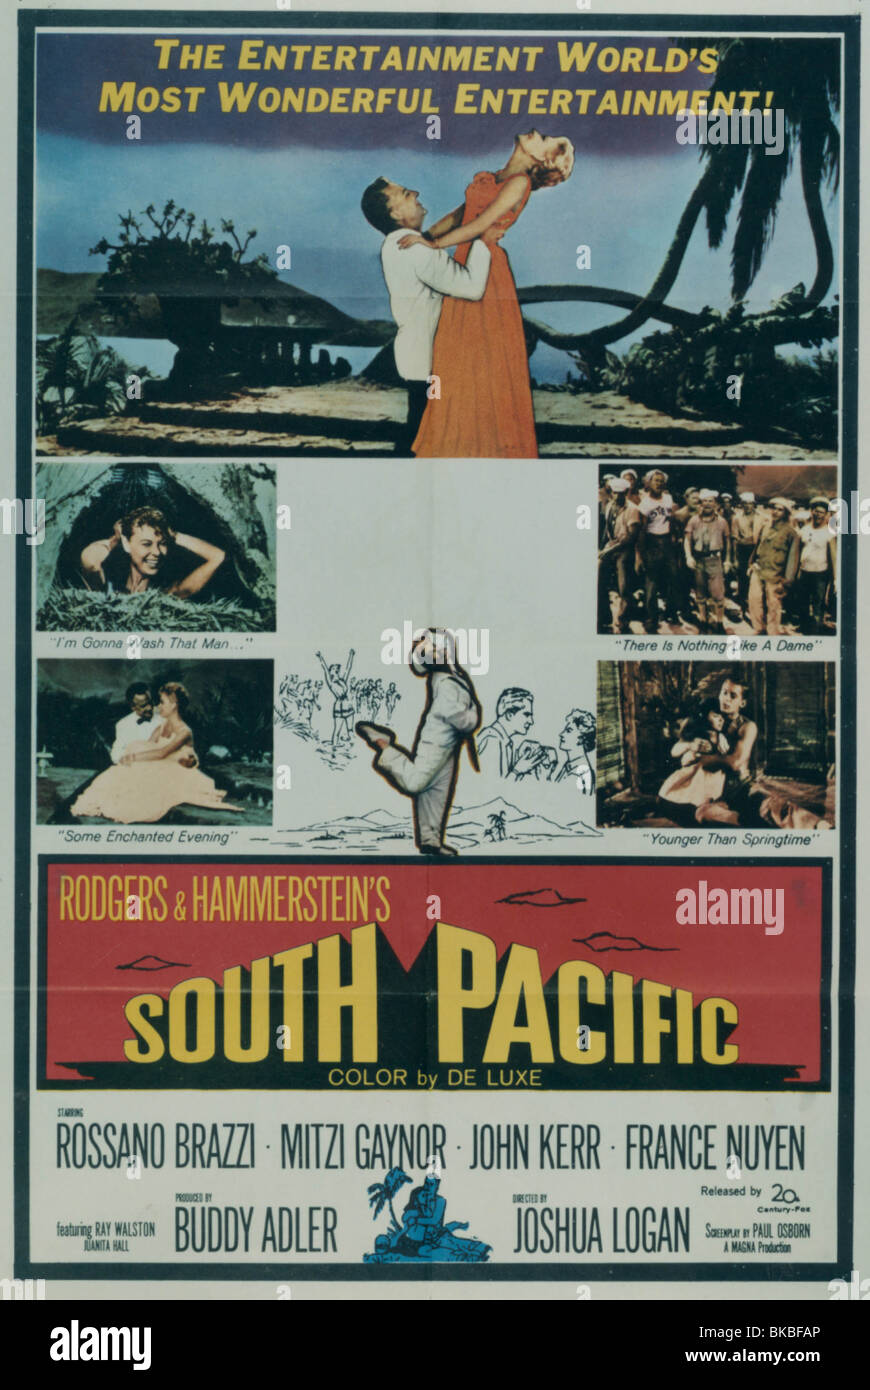 SOUTH PACIFIC -1958 POSTER - Stock Image